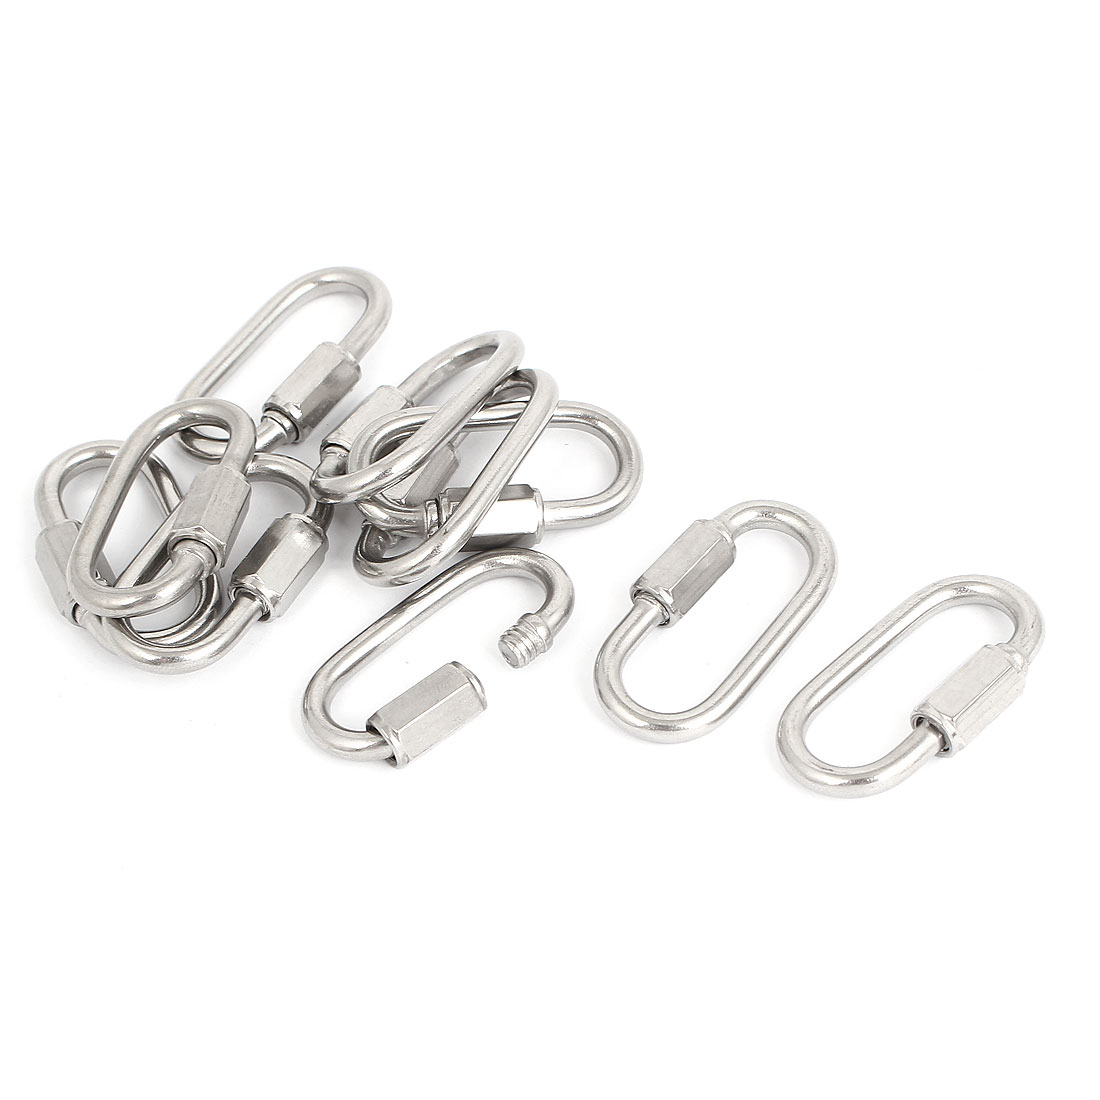 4mm Thickness Stainless Steel Quick Links Carabiners 10 Pcs